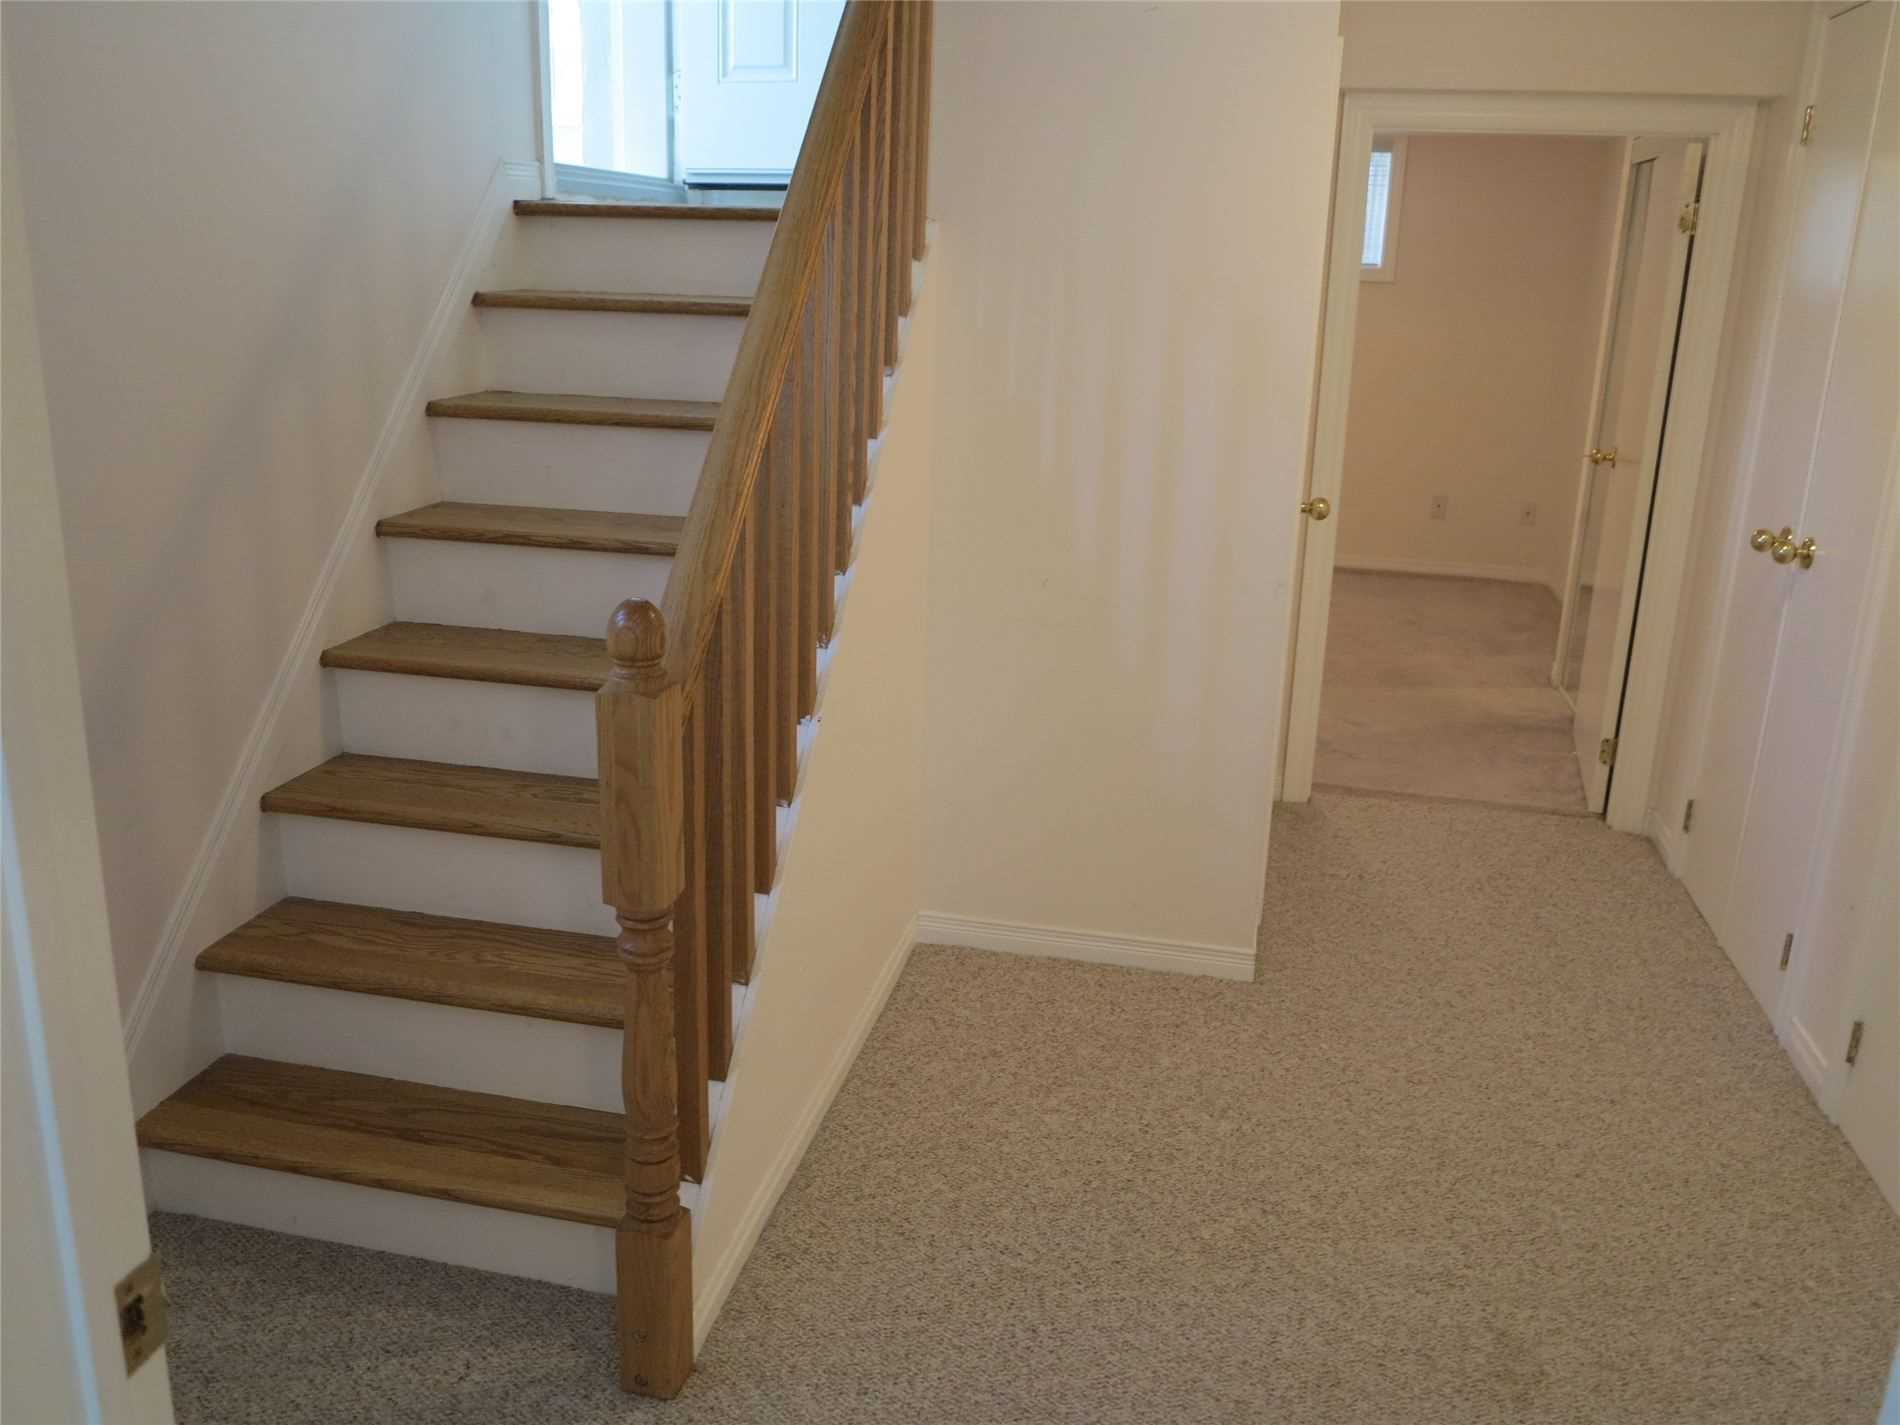 Image 29 of 30 showing inside of 3 Bedroom Detached Bungalow for Lease at 456 Drewry Ave, Toronto M2R2K7